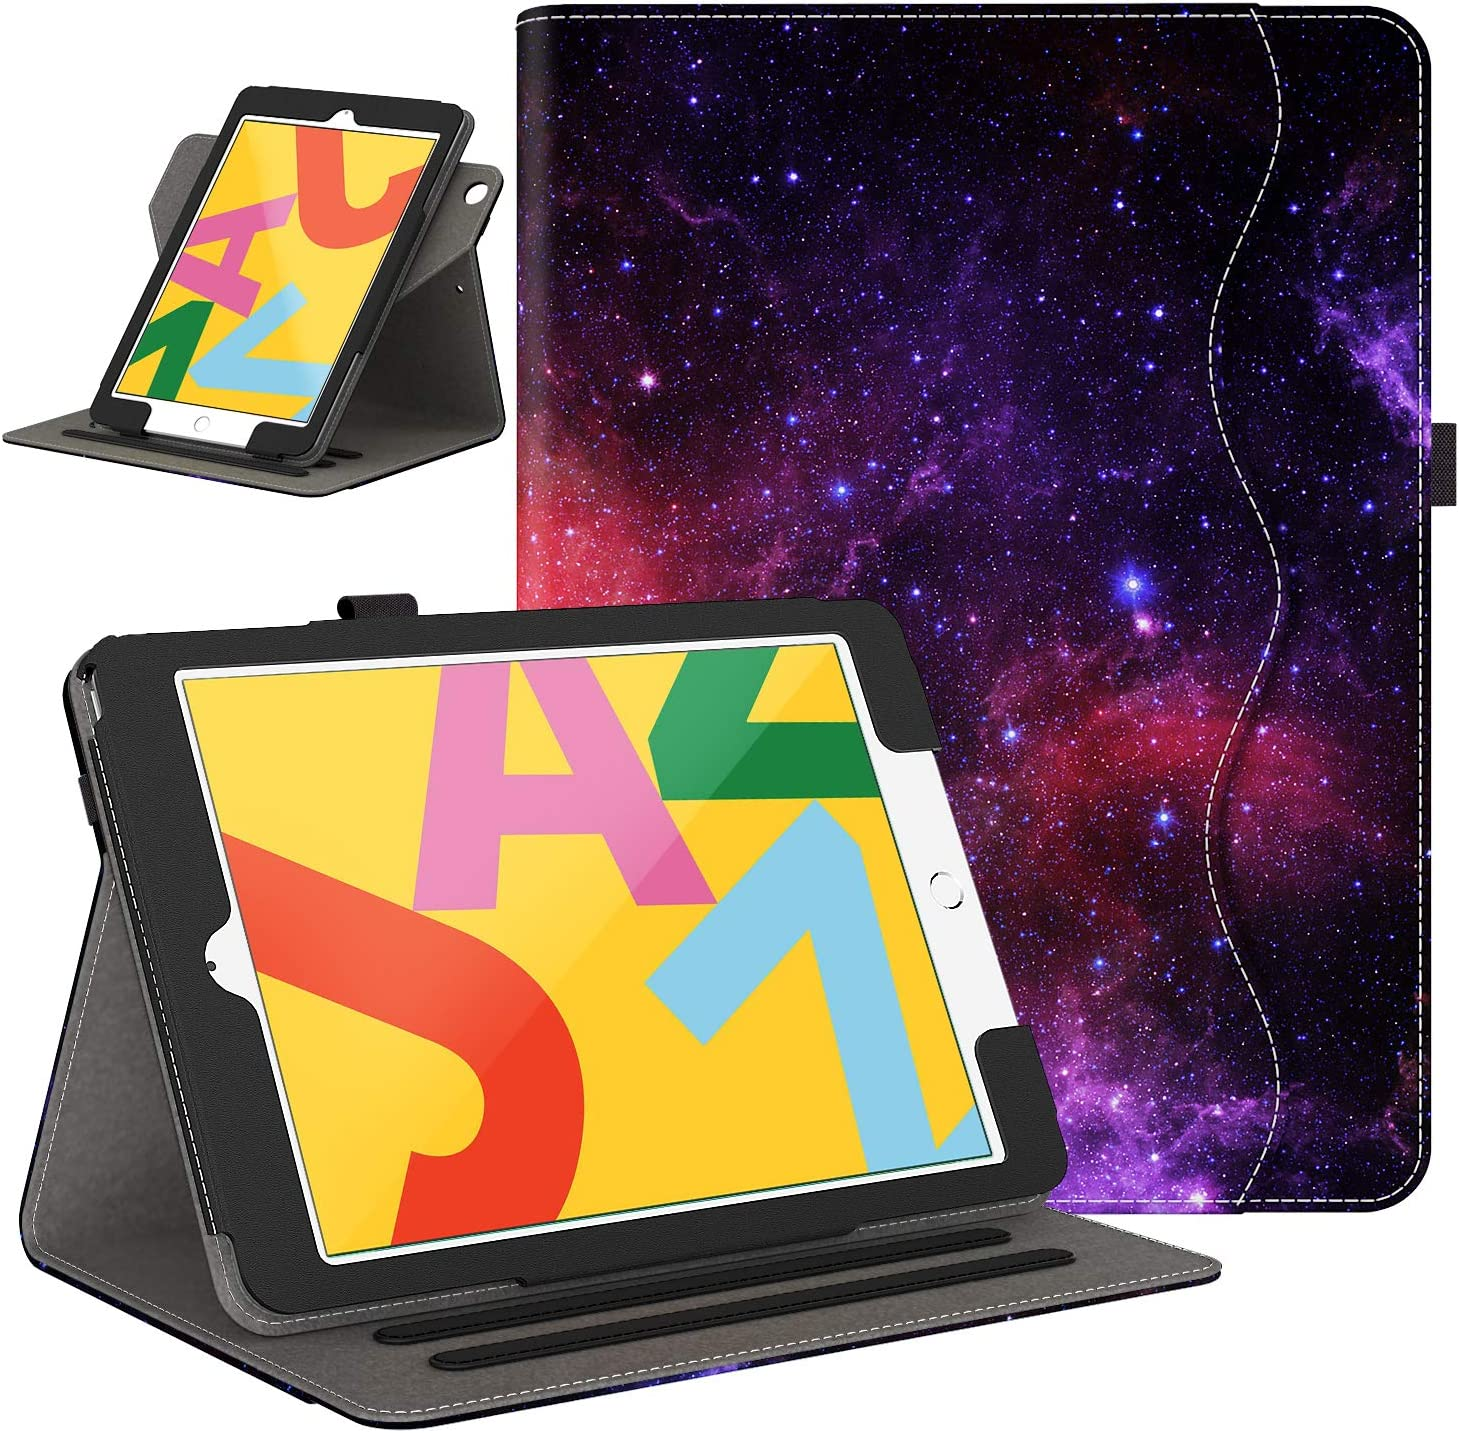 Retear Case for New iPad 8th Gen (2020) / 7th Generation (2019) 10.2 Inch - 360 Degree Rotating Smart PU Leather Stand Apple Cover with Auto Wake/Sleep